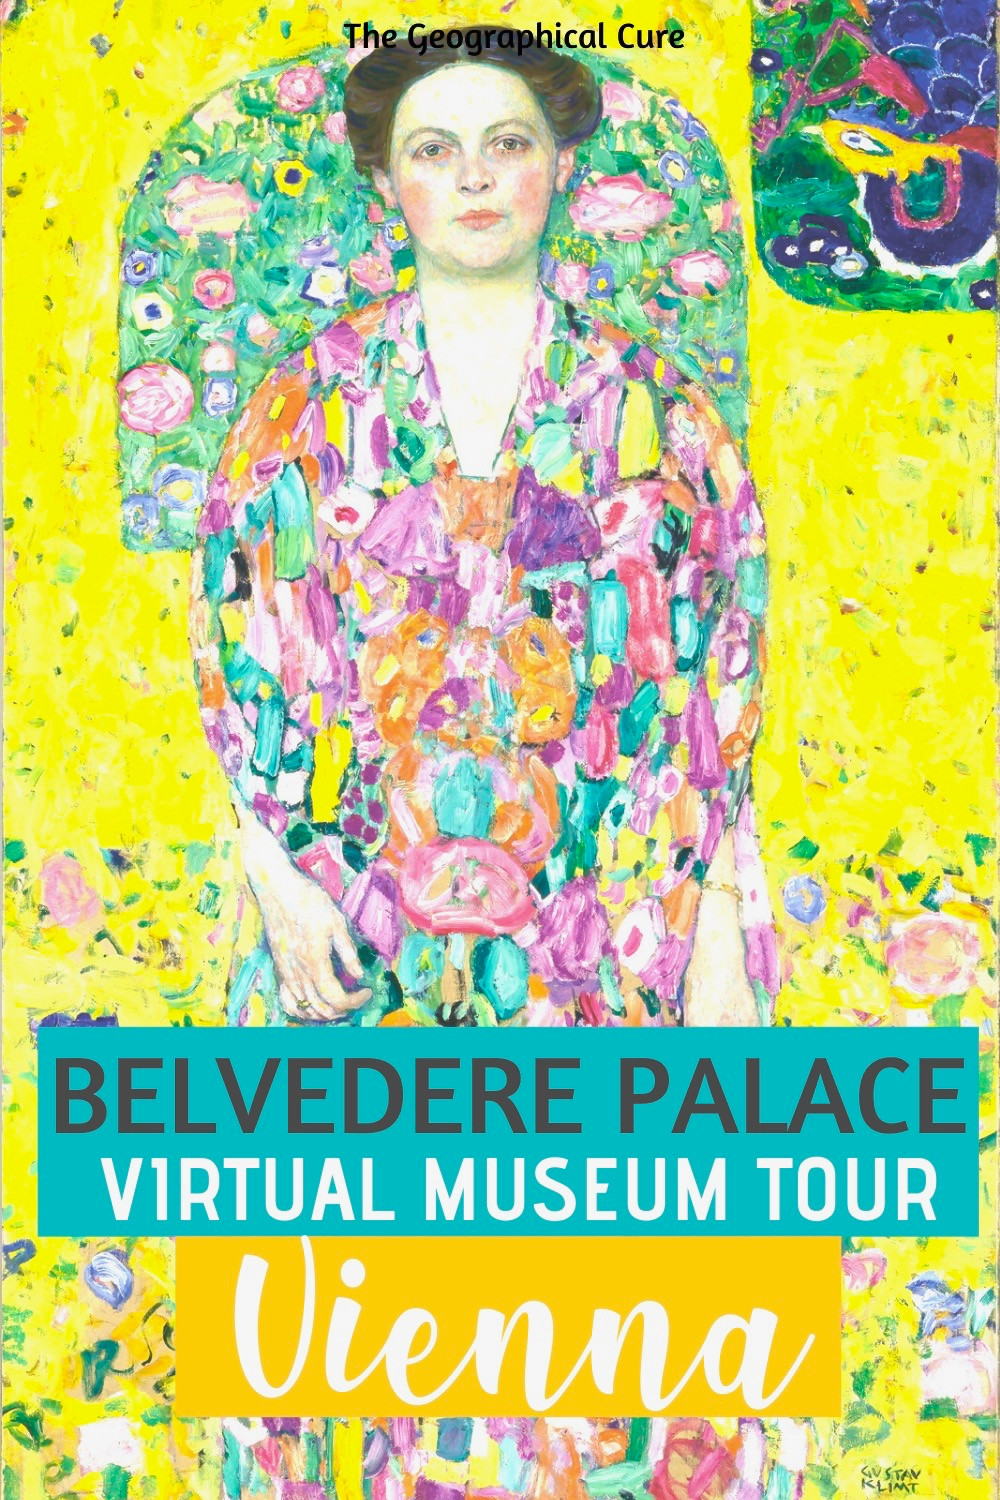 guide to the Belvedere Palace museum in Vienna Austria